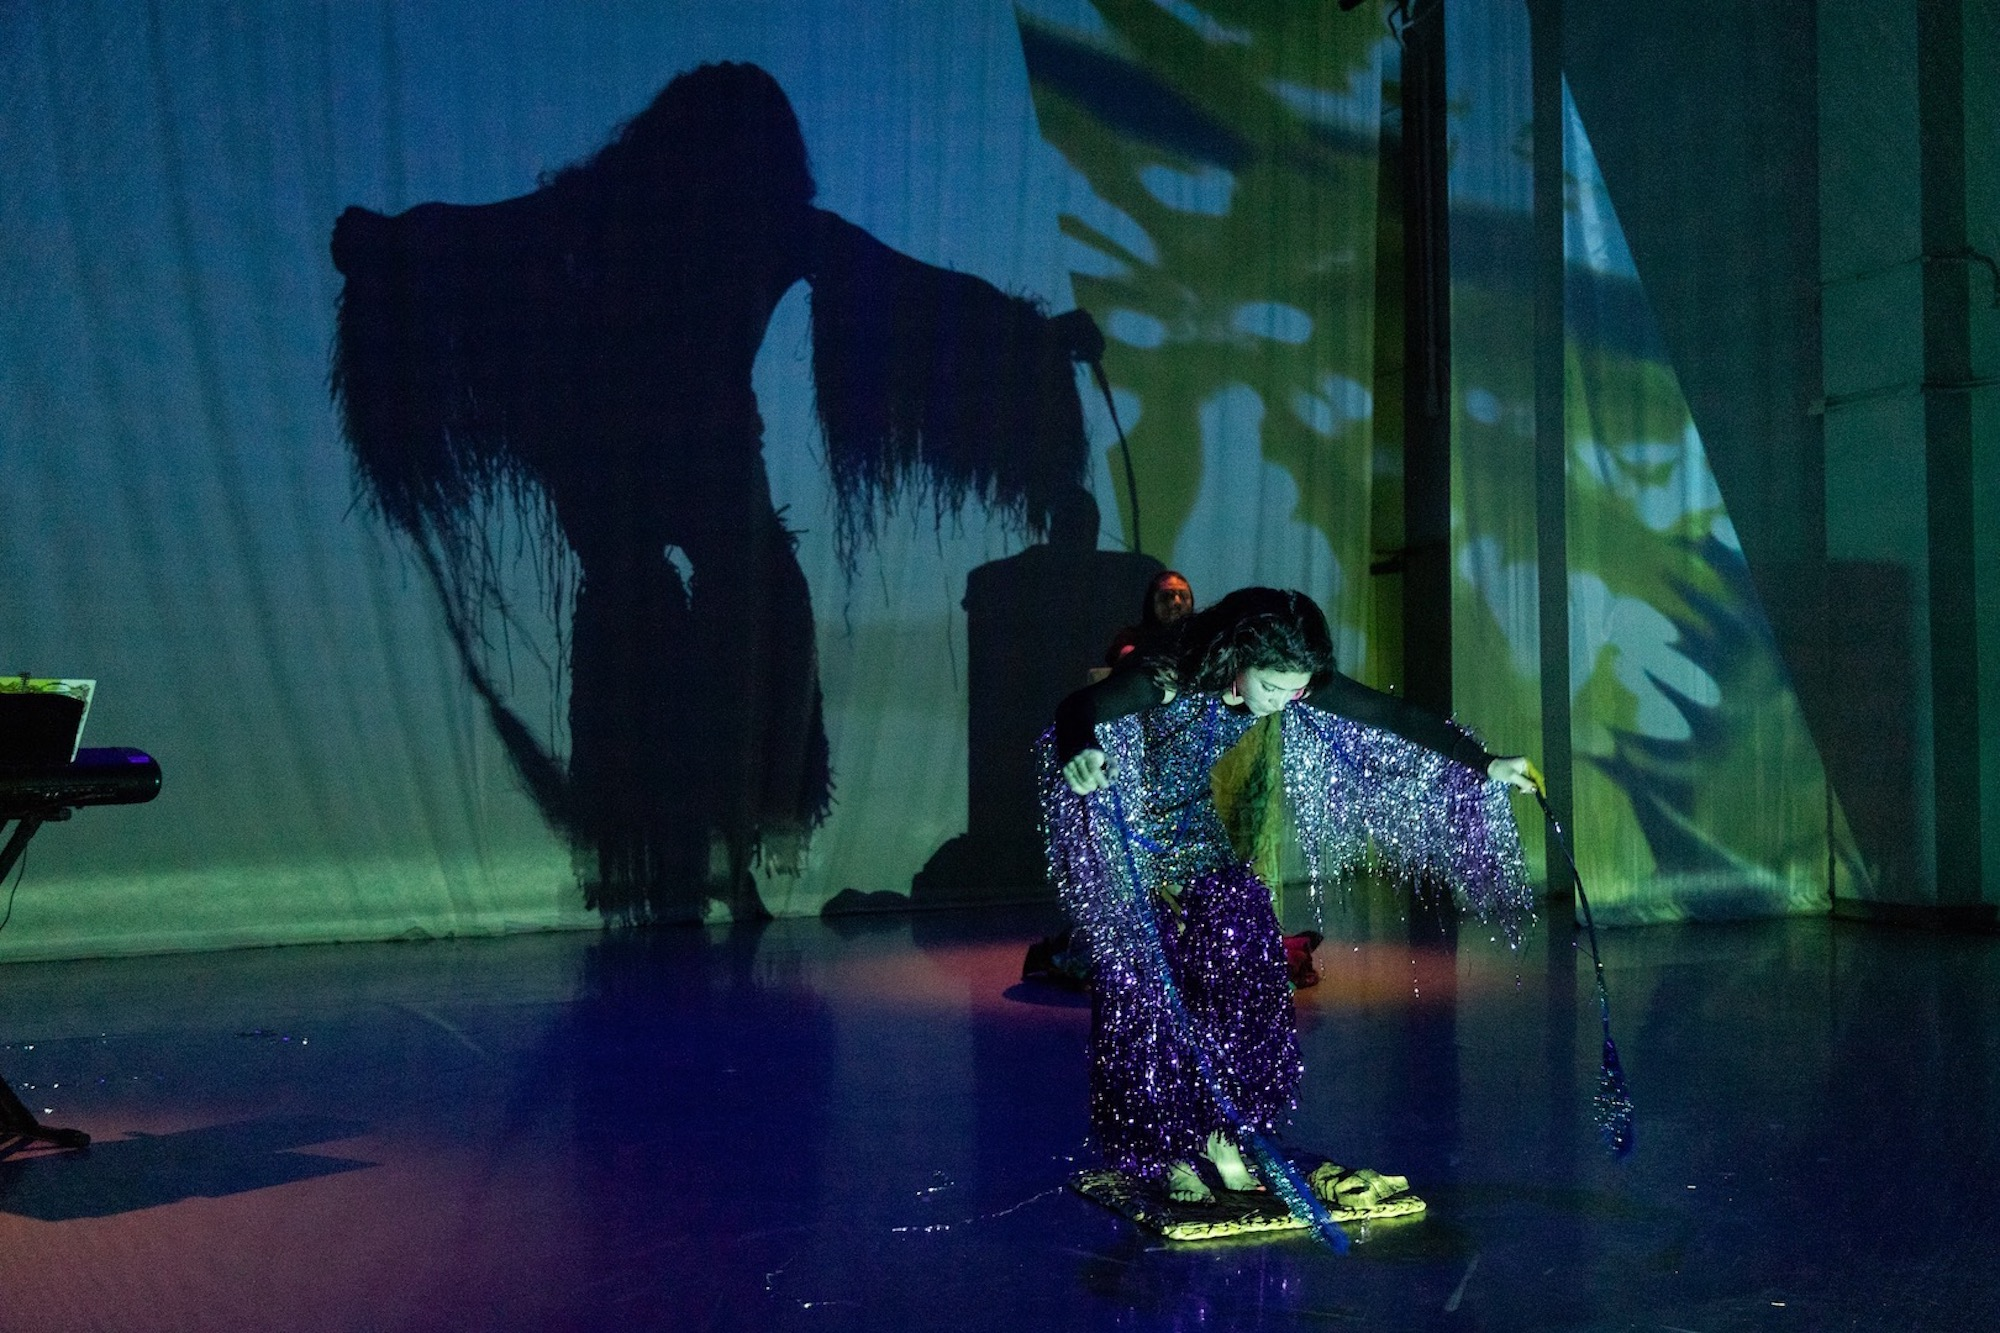 A performer with long dark hair is barefoot and wearing a costume with purple and silver sparkly fringe. They are slightly bent over and looking down. Their shadow is on the blue and green backdrop.